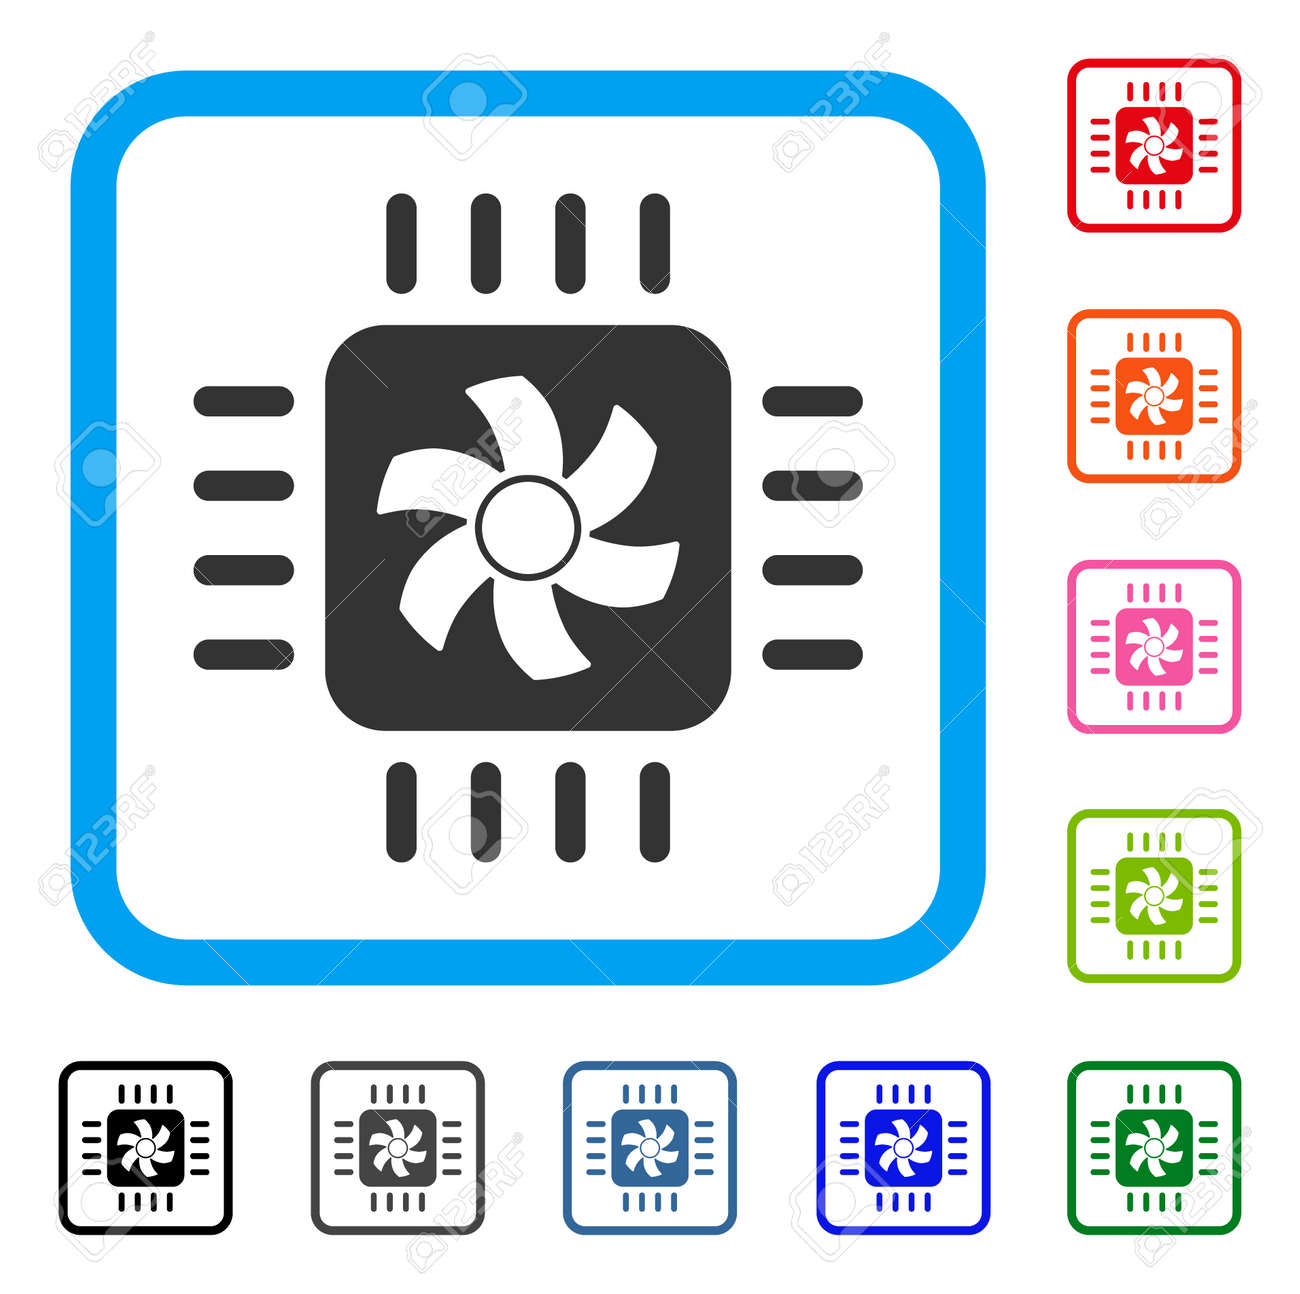 CPU Cooler Icon. Flat Gray Iconic Symbol Inside A Blue Rounded ...